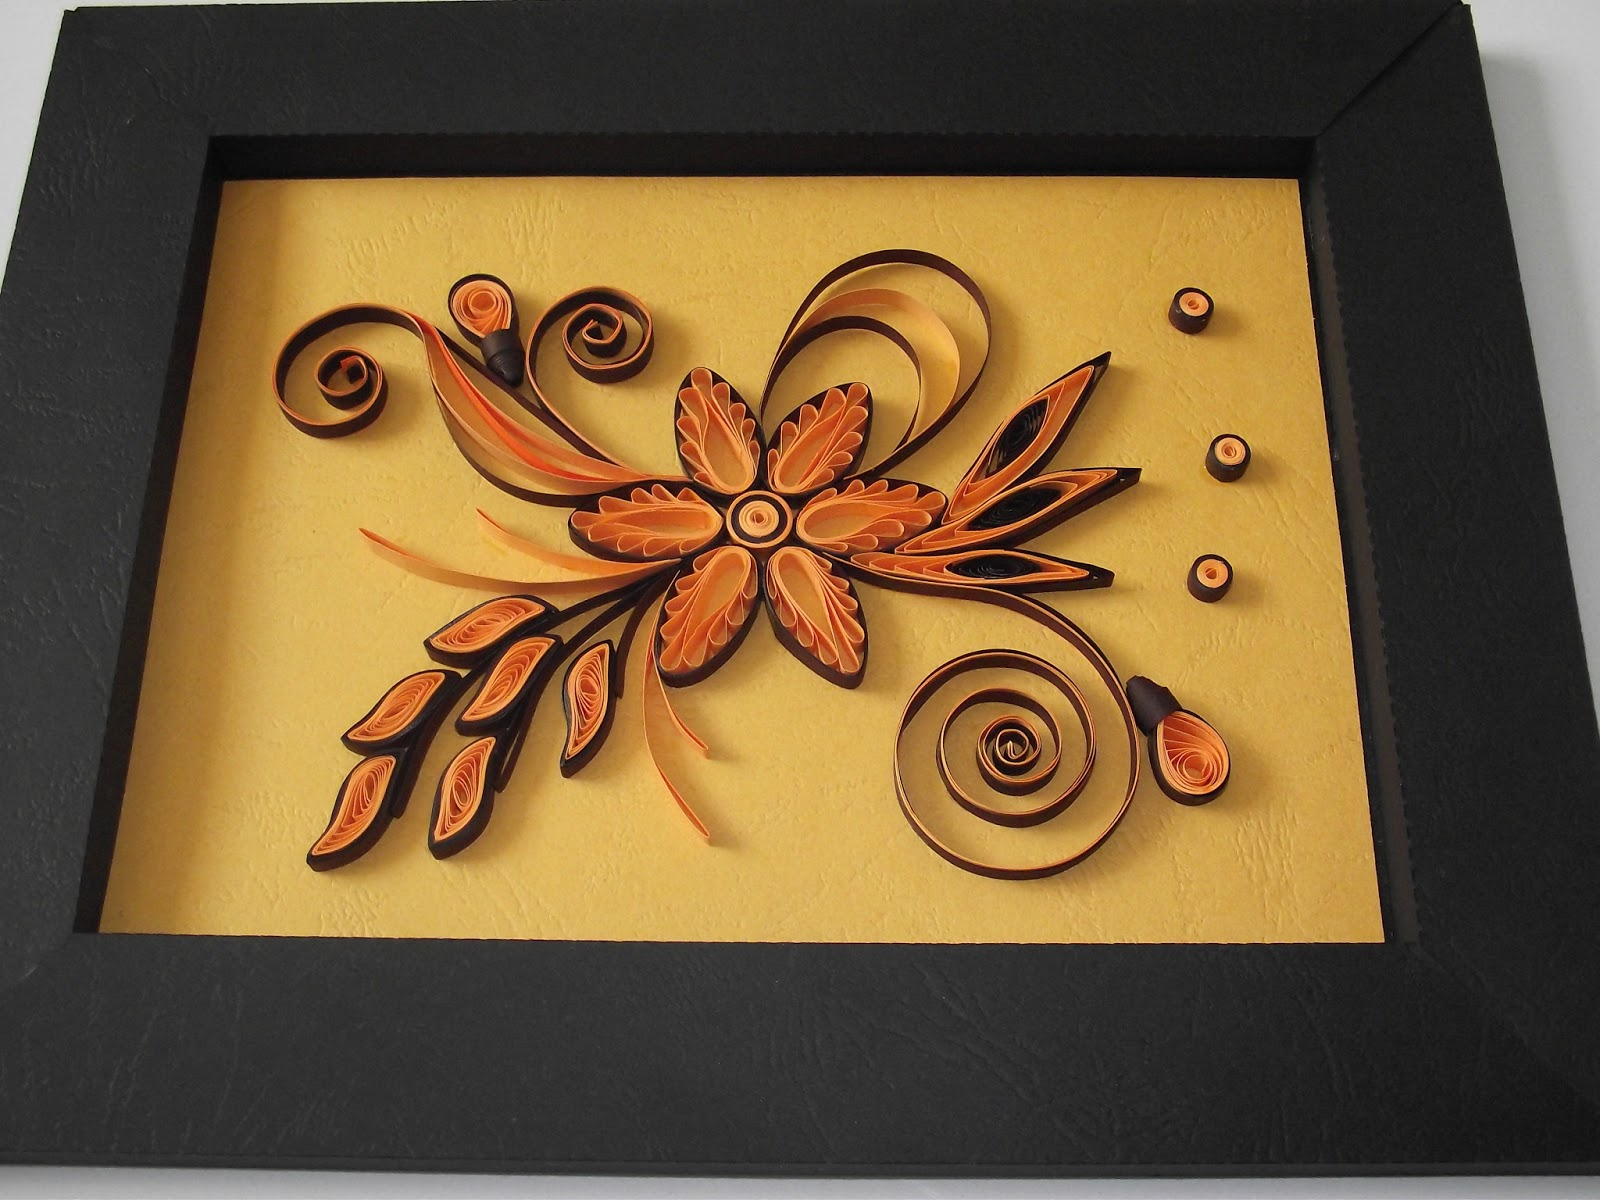 invitatii handmade tablouri quilling modele noi martie aprilie 2013. Black Bedroom Furniture Sets. Home Design Ideas